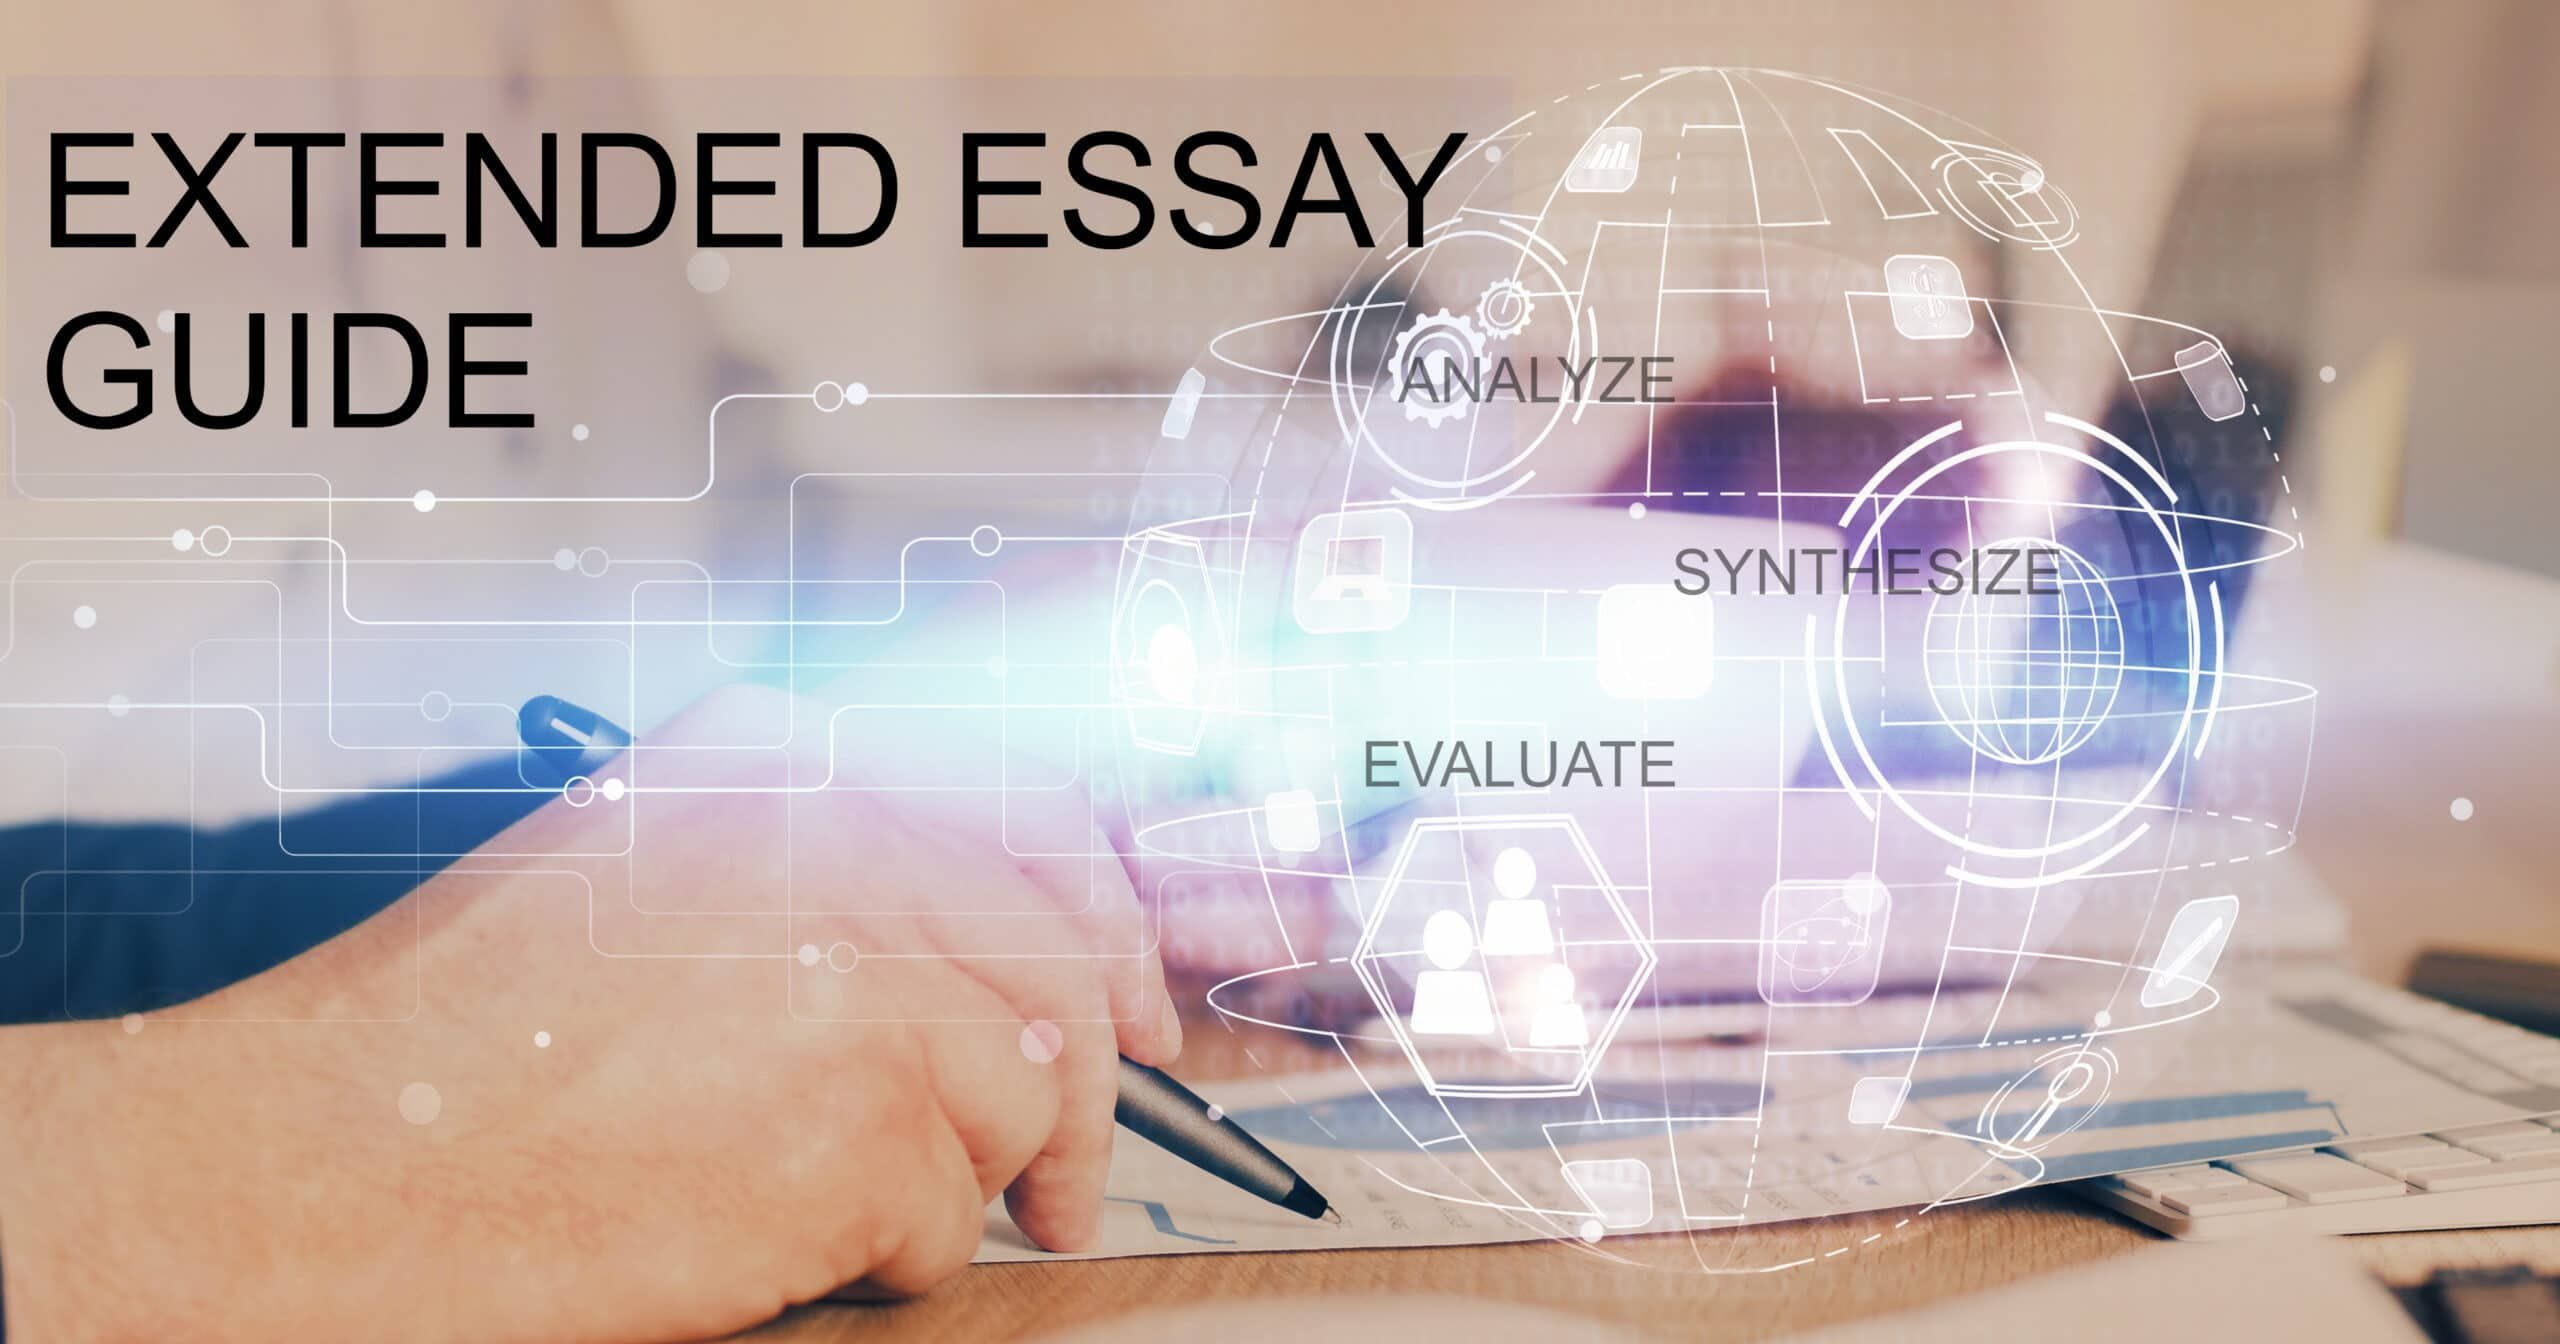 complete extended essay guide with hack your course ap and ib tutoring service